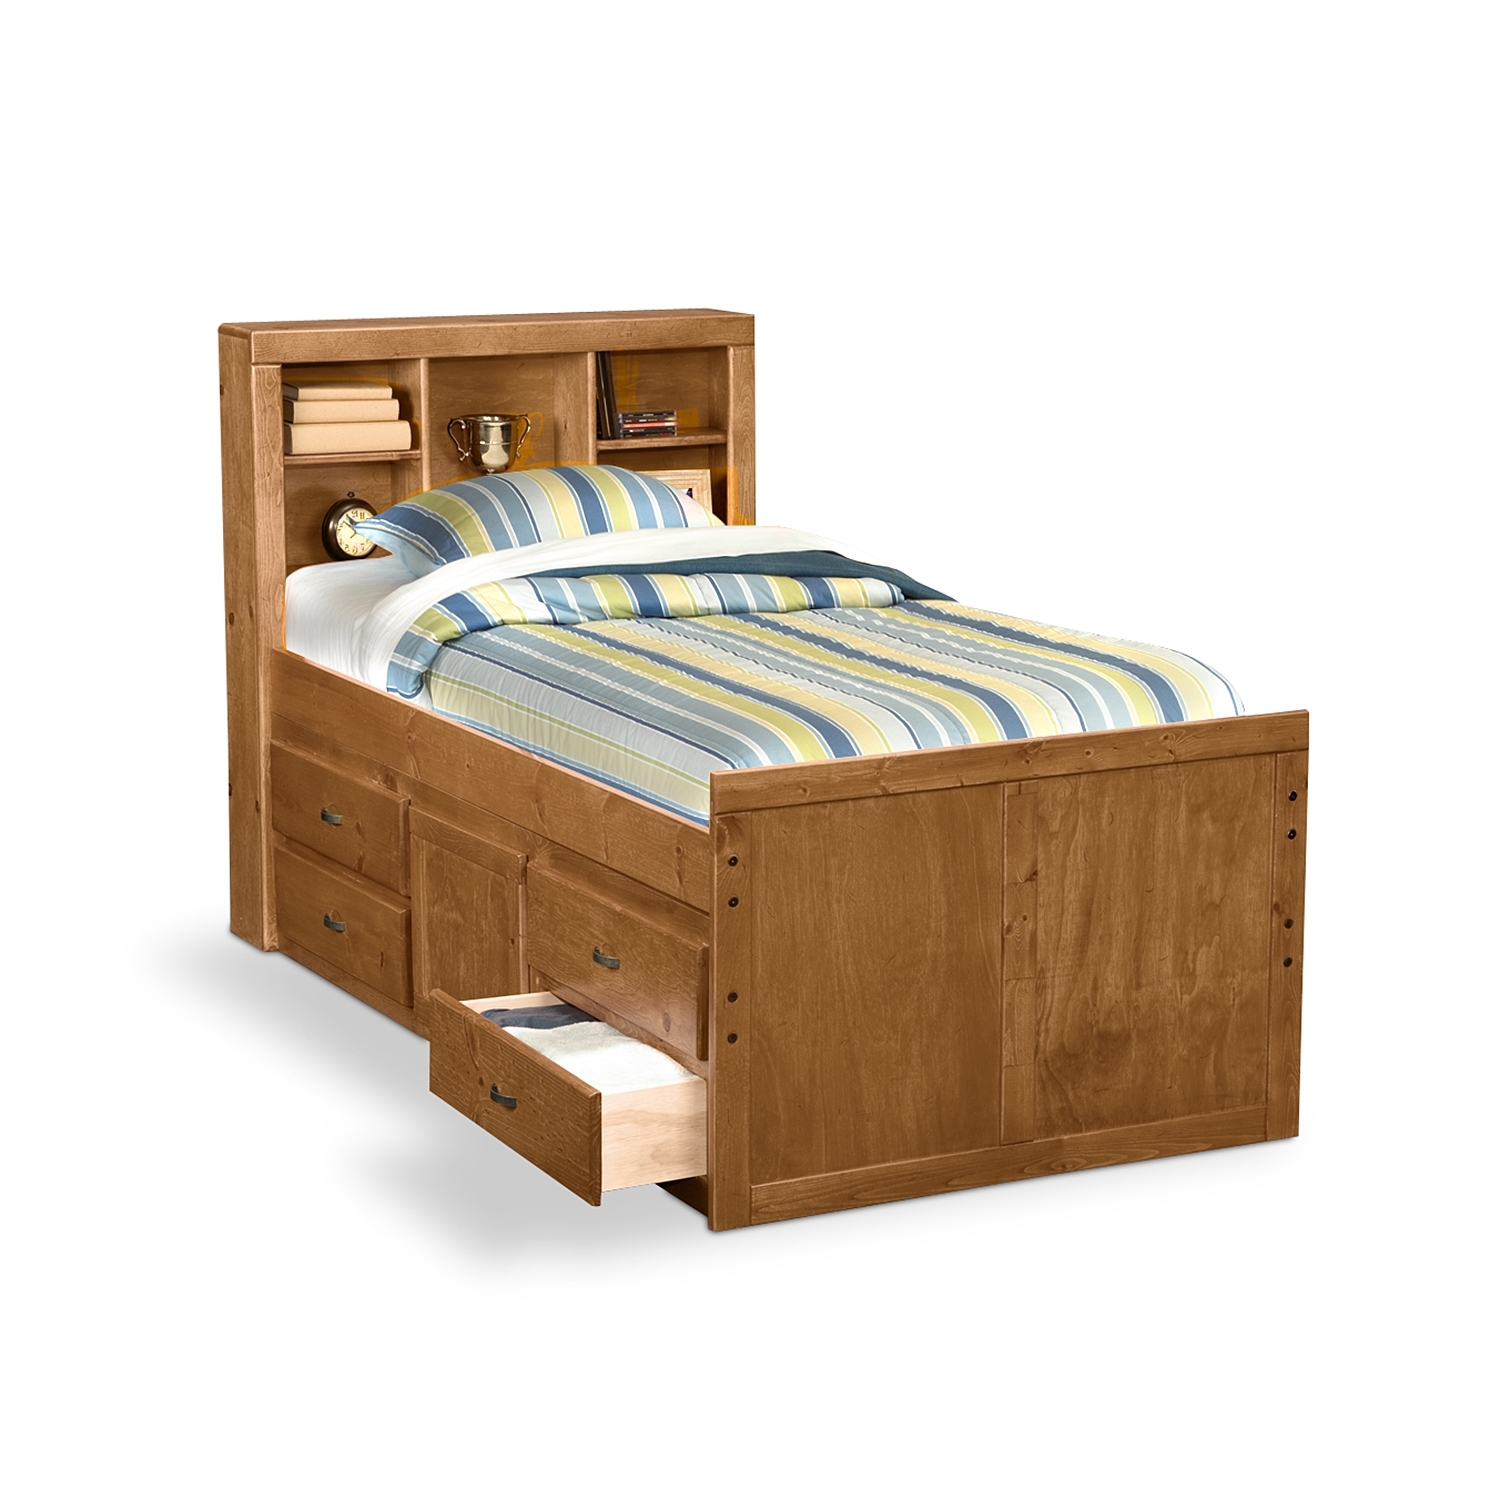 Bed With Storage Underneath You Ll Love In 2021 Visualhunt